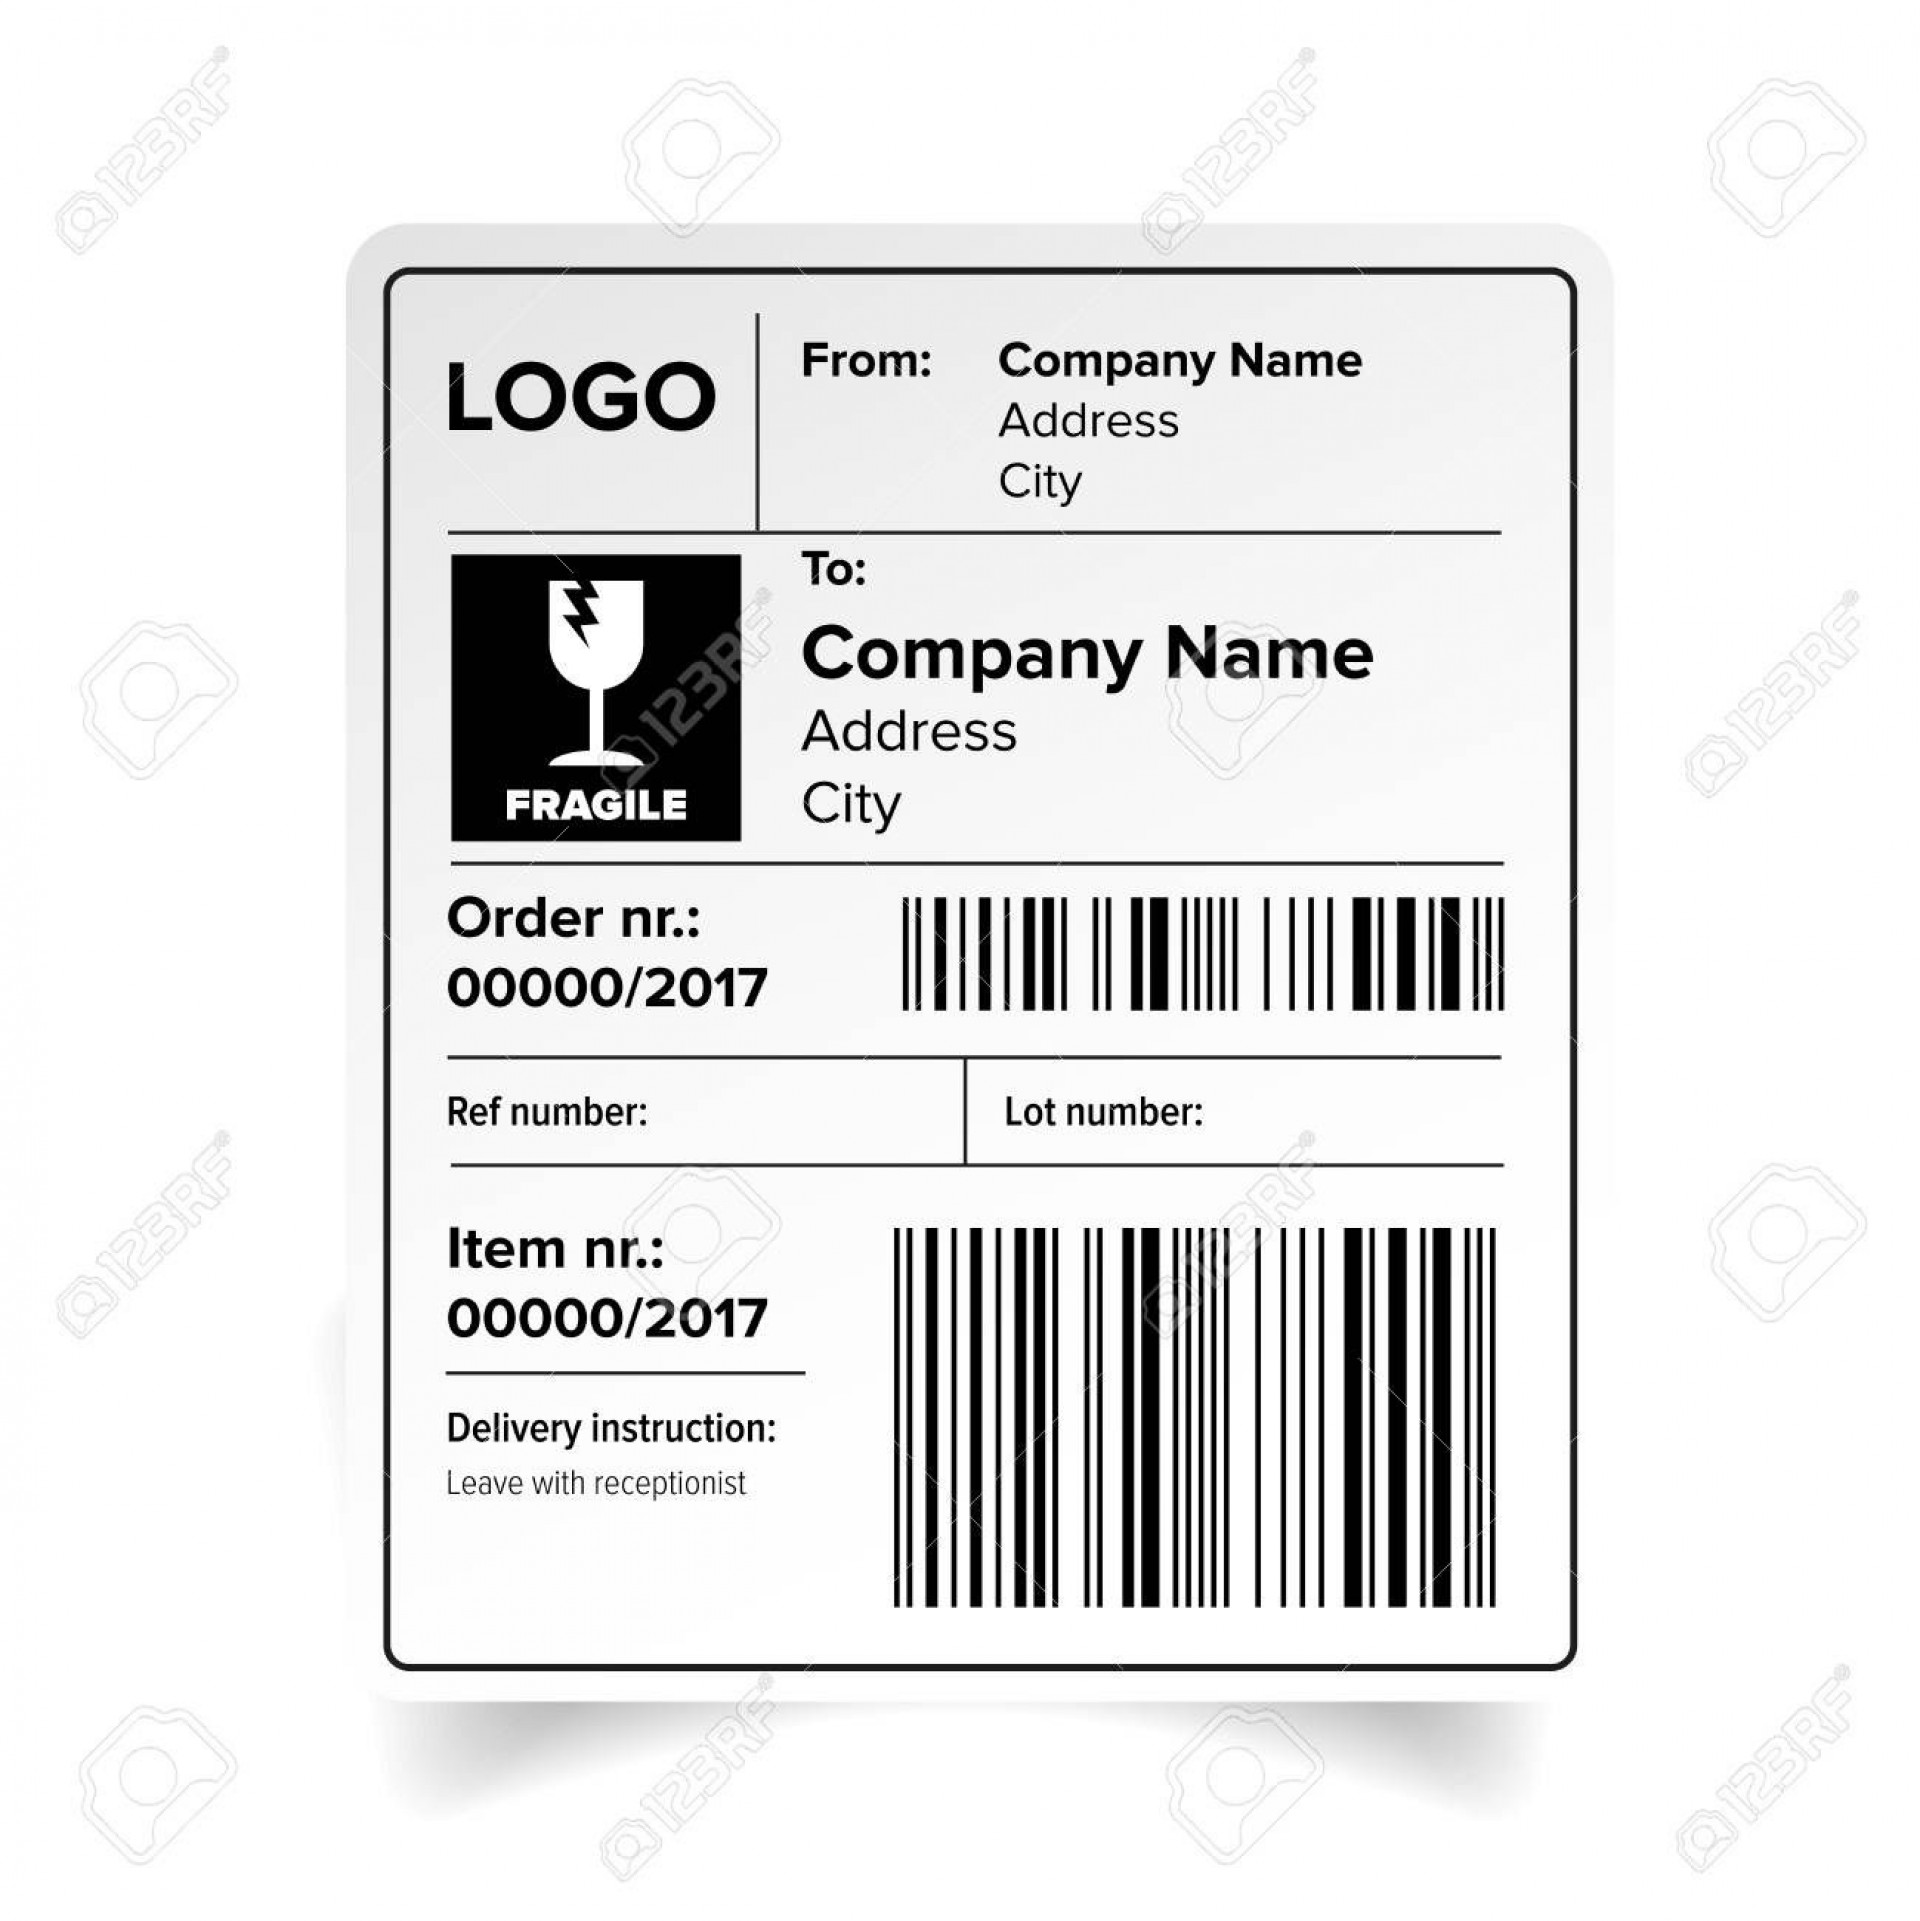 005 Amazing Free Shipping Label Format Highest Quality 1920